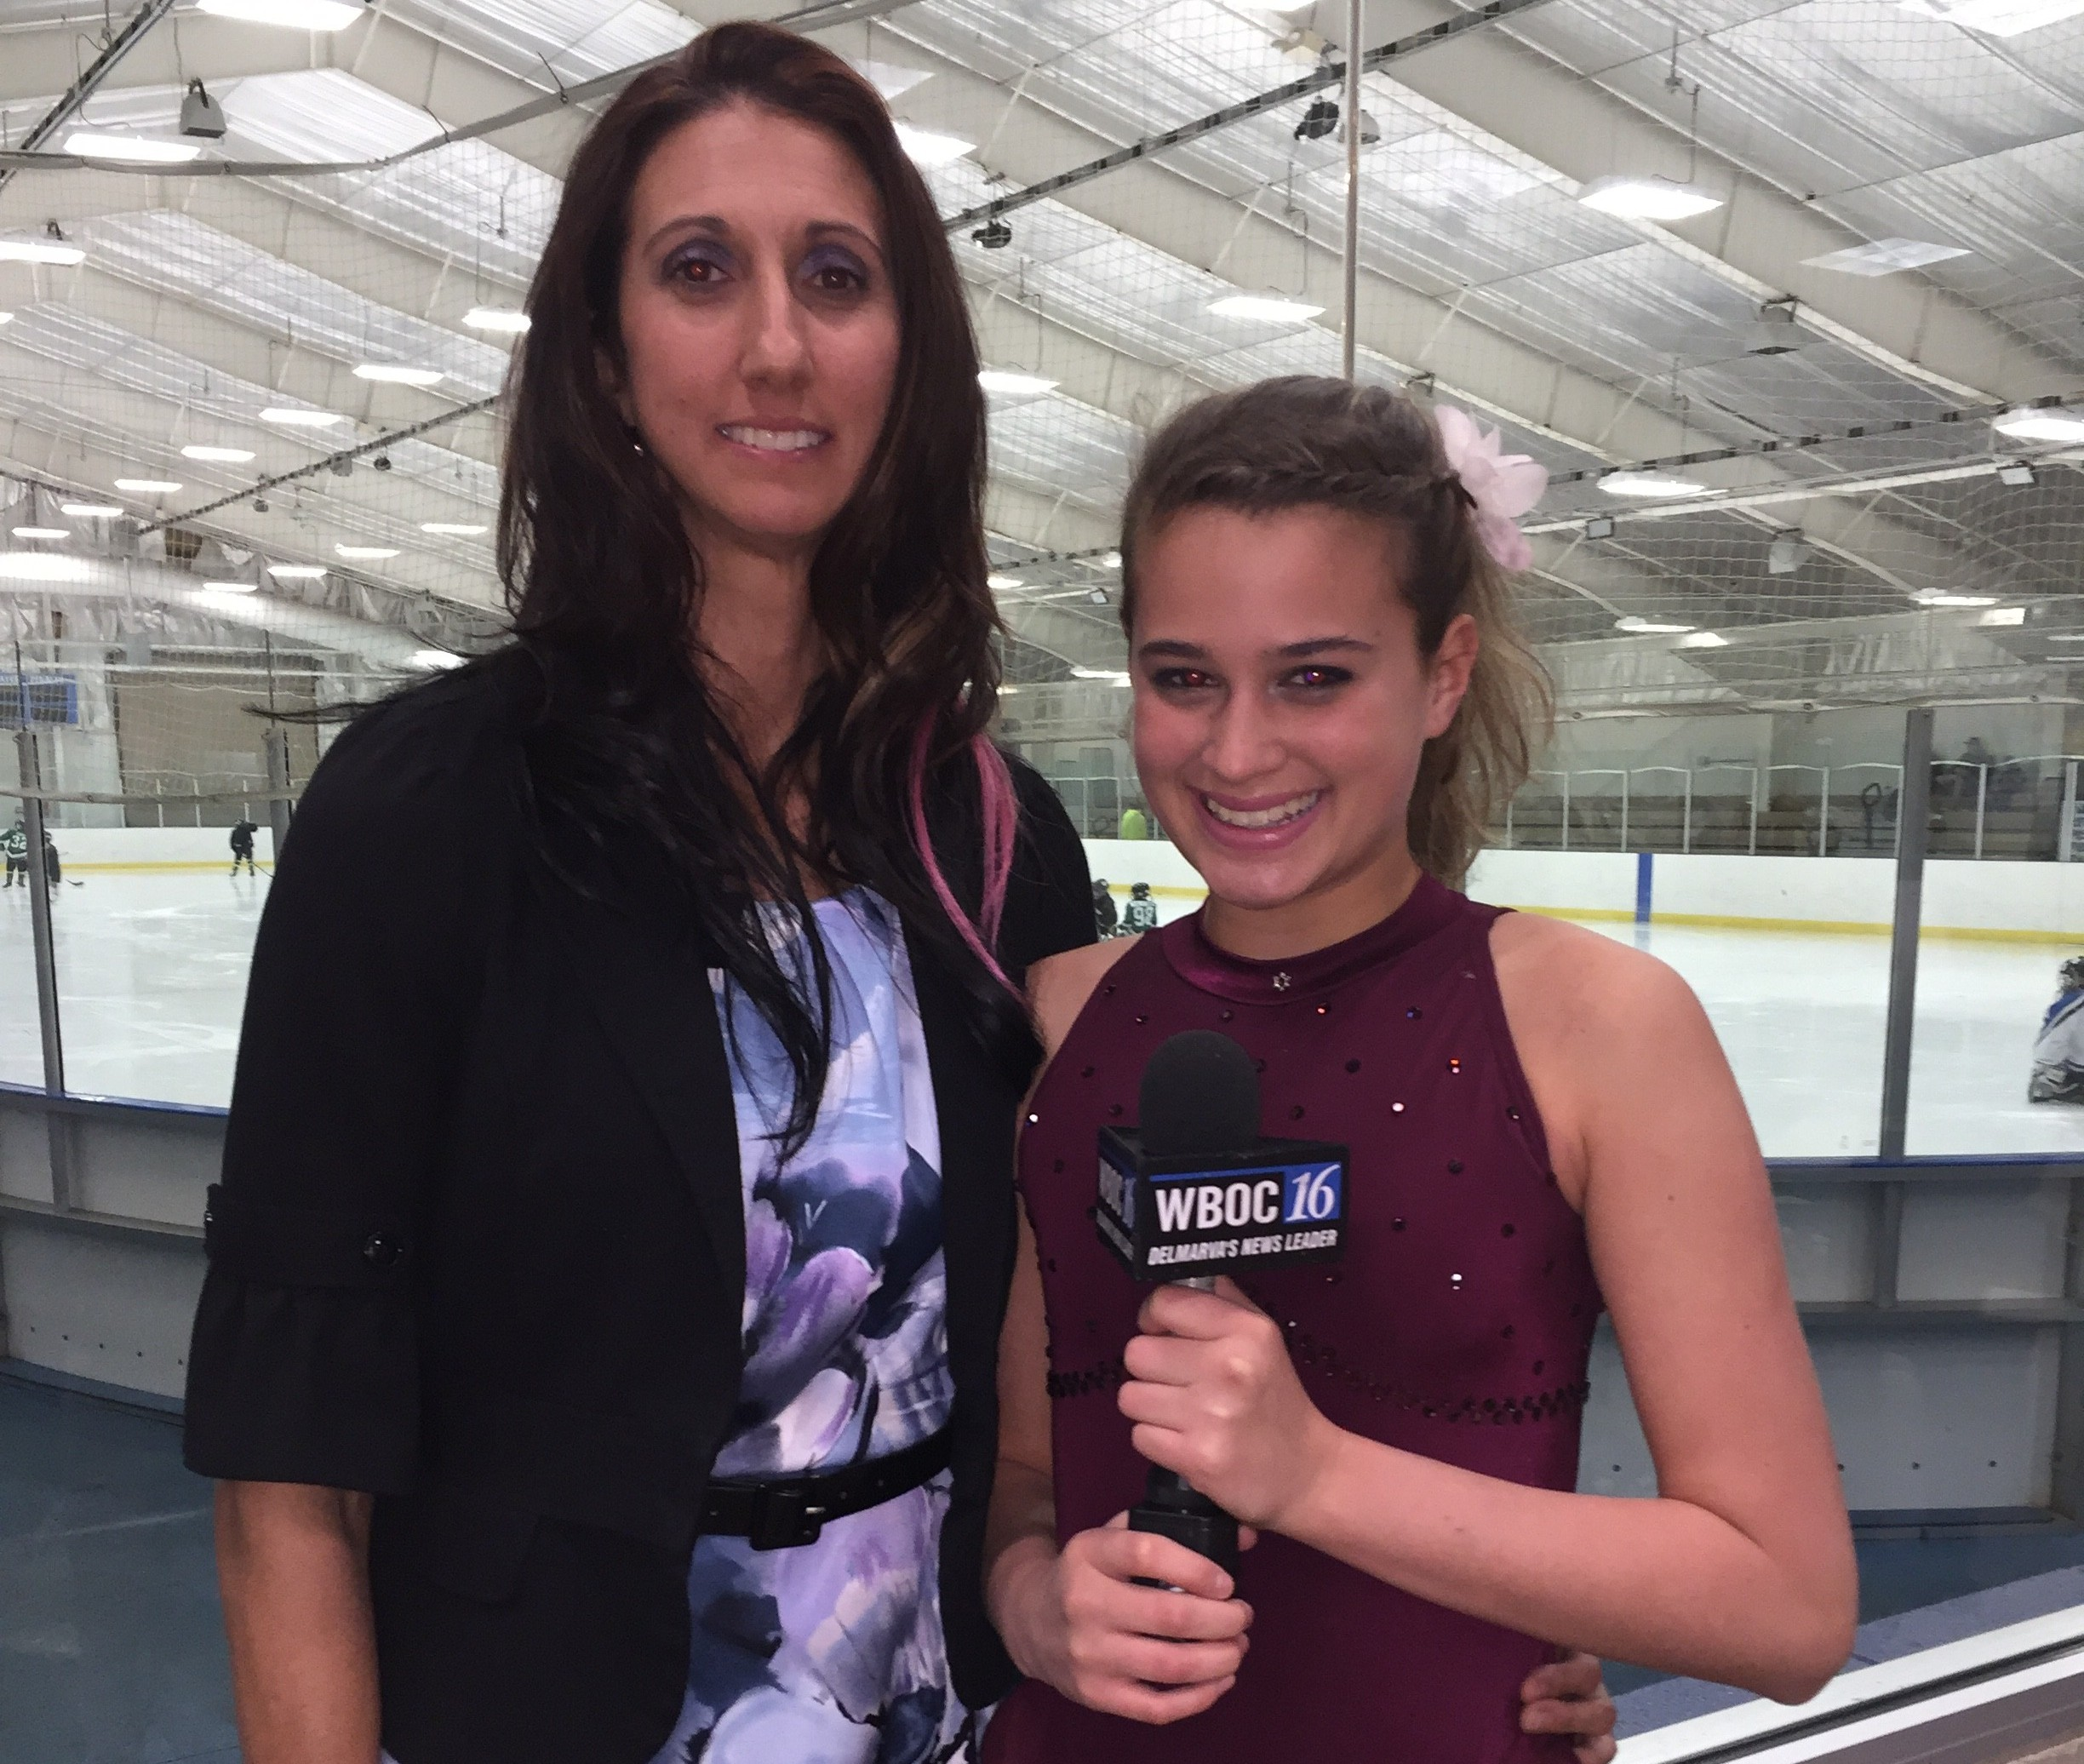 Millsboro Figure Skater with Olympic Dreams